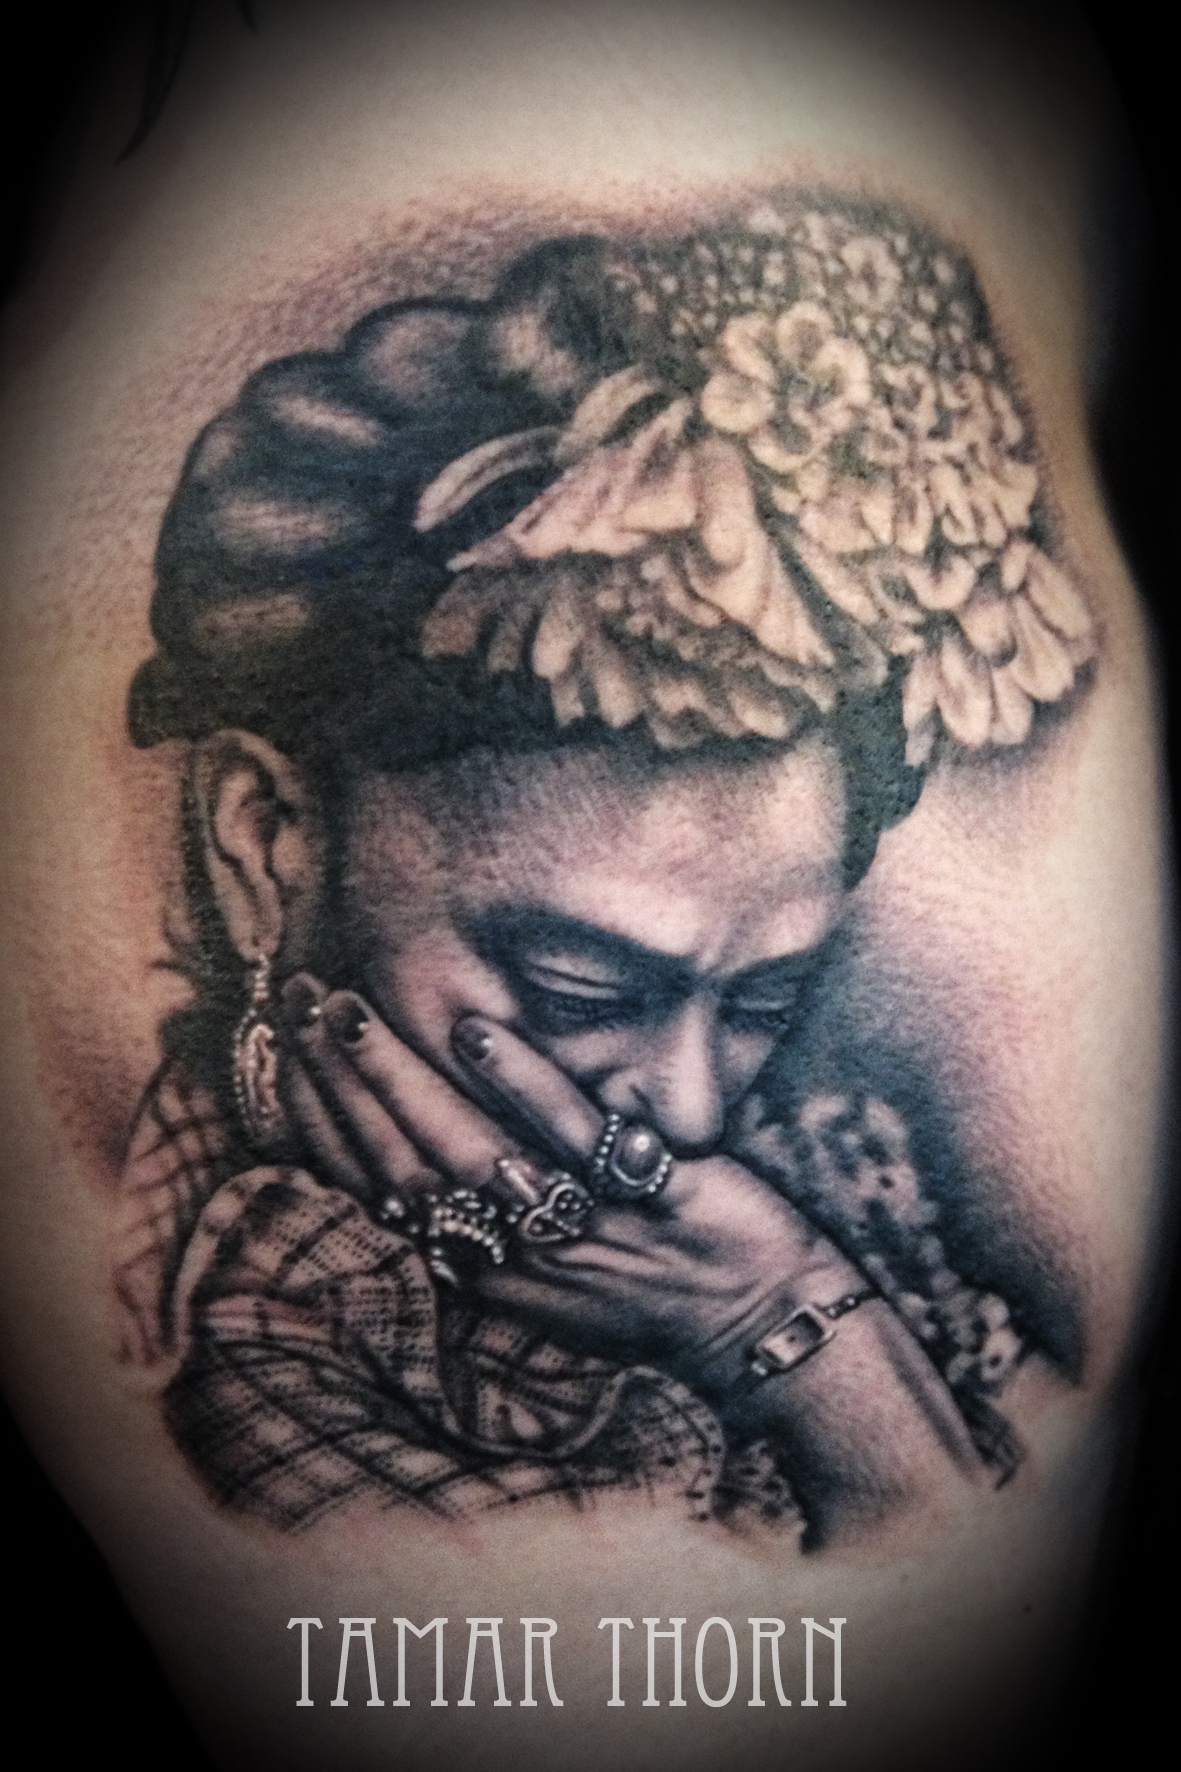 interview tattoo artist tamar thorn talks to us about her past life tattoos and a beautiful. Black Bedroom Furniture Sets. Home Design Ideas